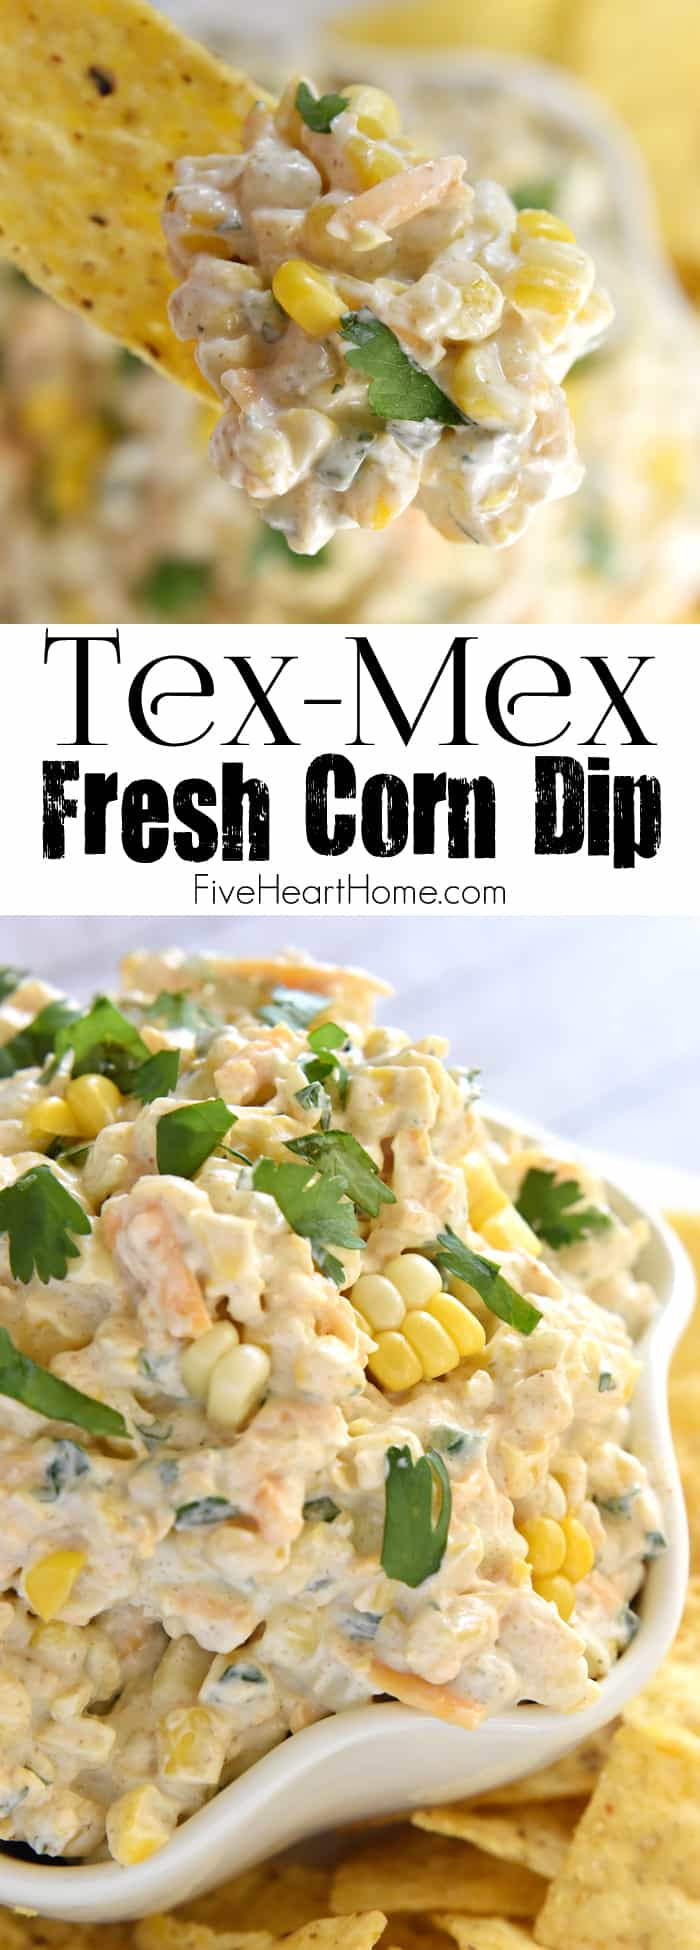 Tex-Mex Fresh Corn Dip ~ creamy, cheesy dip featuring fresh roasted corn, laced with cumin, a touch of jalapeño, and fresh cilantro...the perfect appetizer or snack for any summer cookout or get-together! | FiveHeartHome.com via @fivehearthome